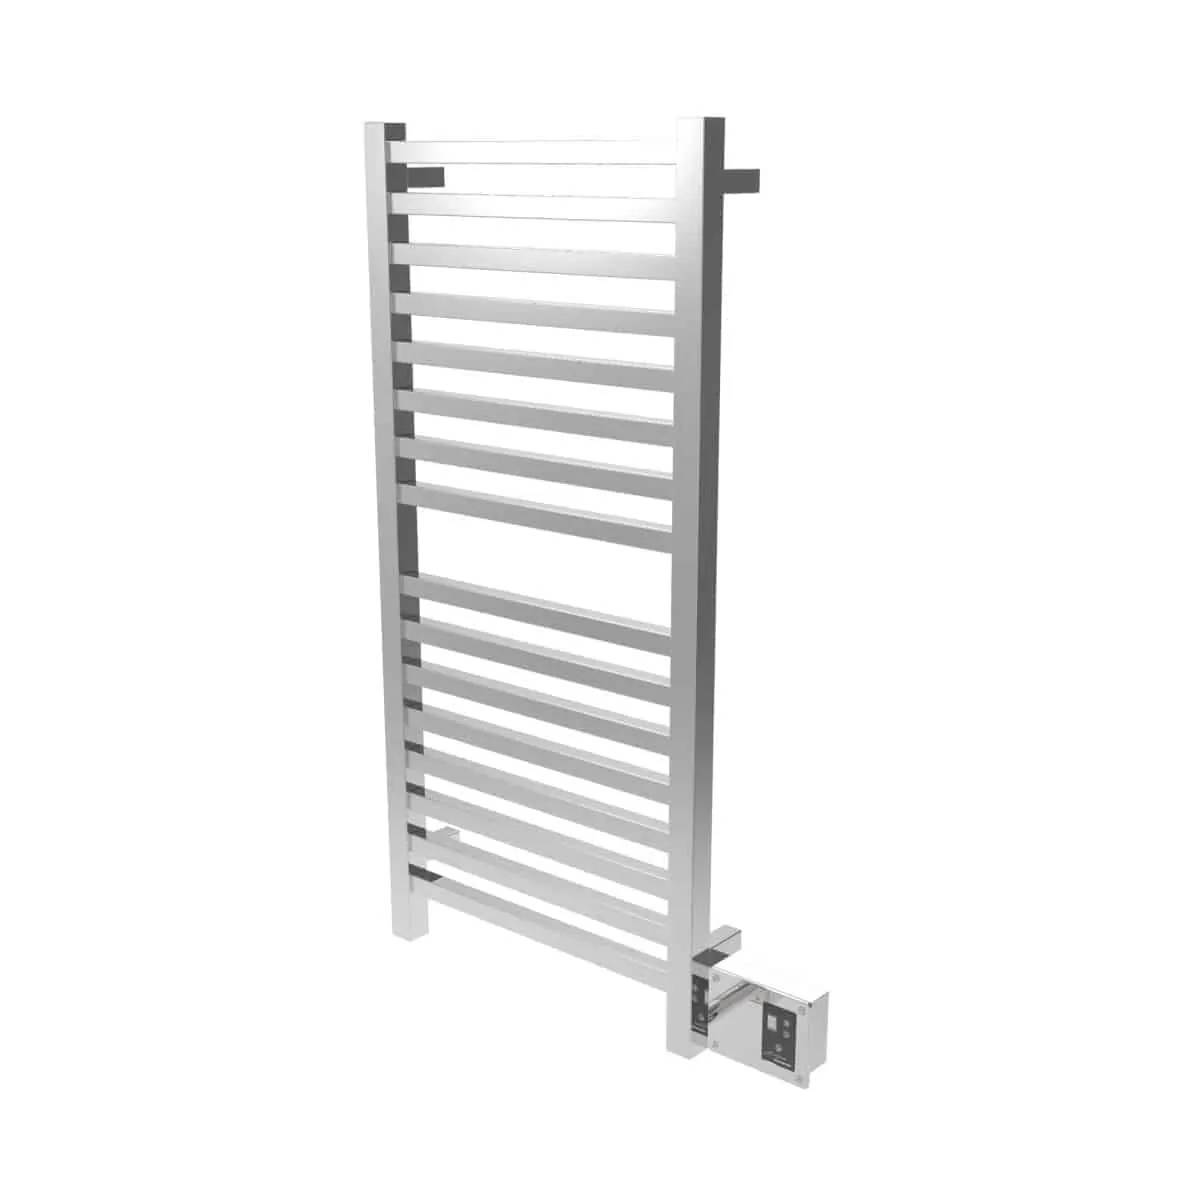 Amba Q2042P Quadro Heated Towel Rack - Polished